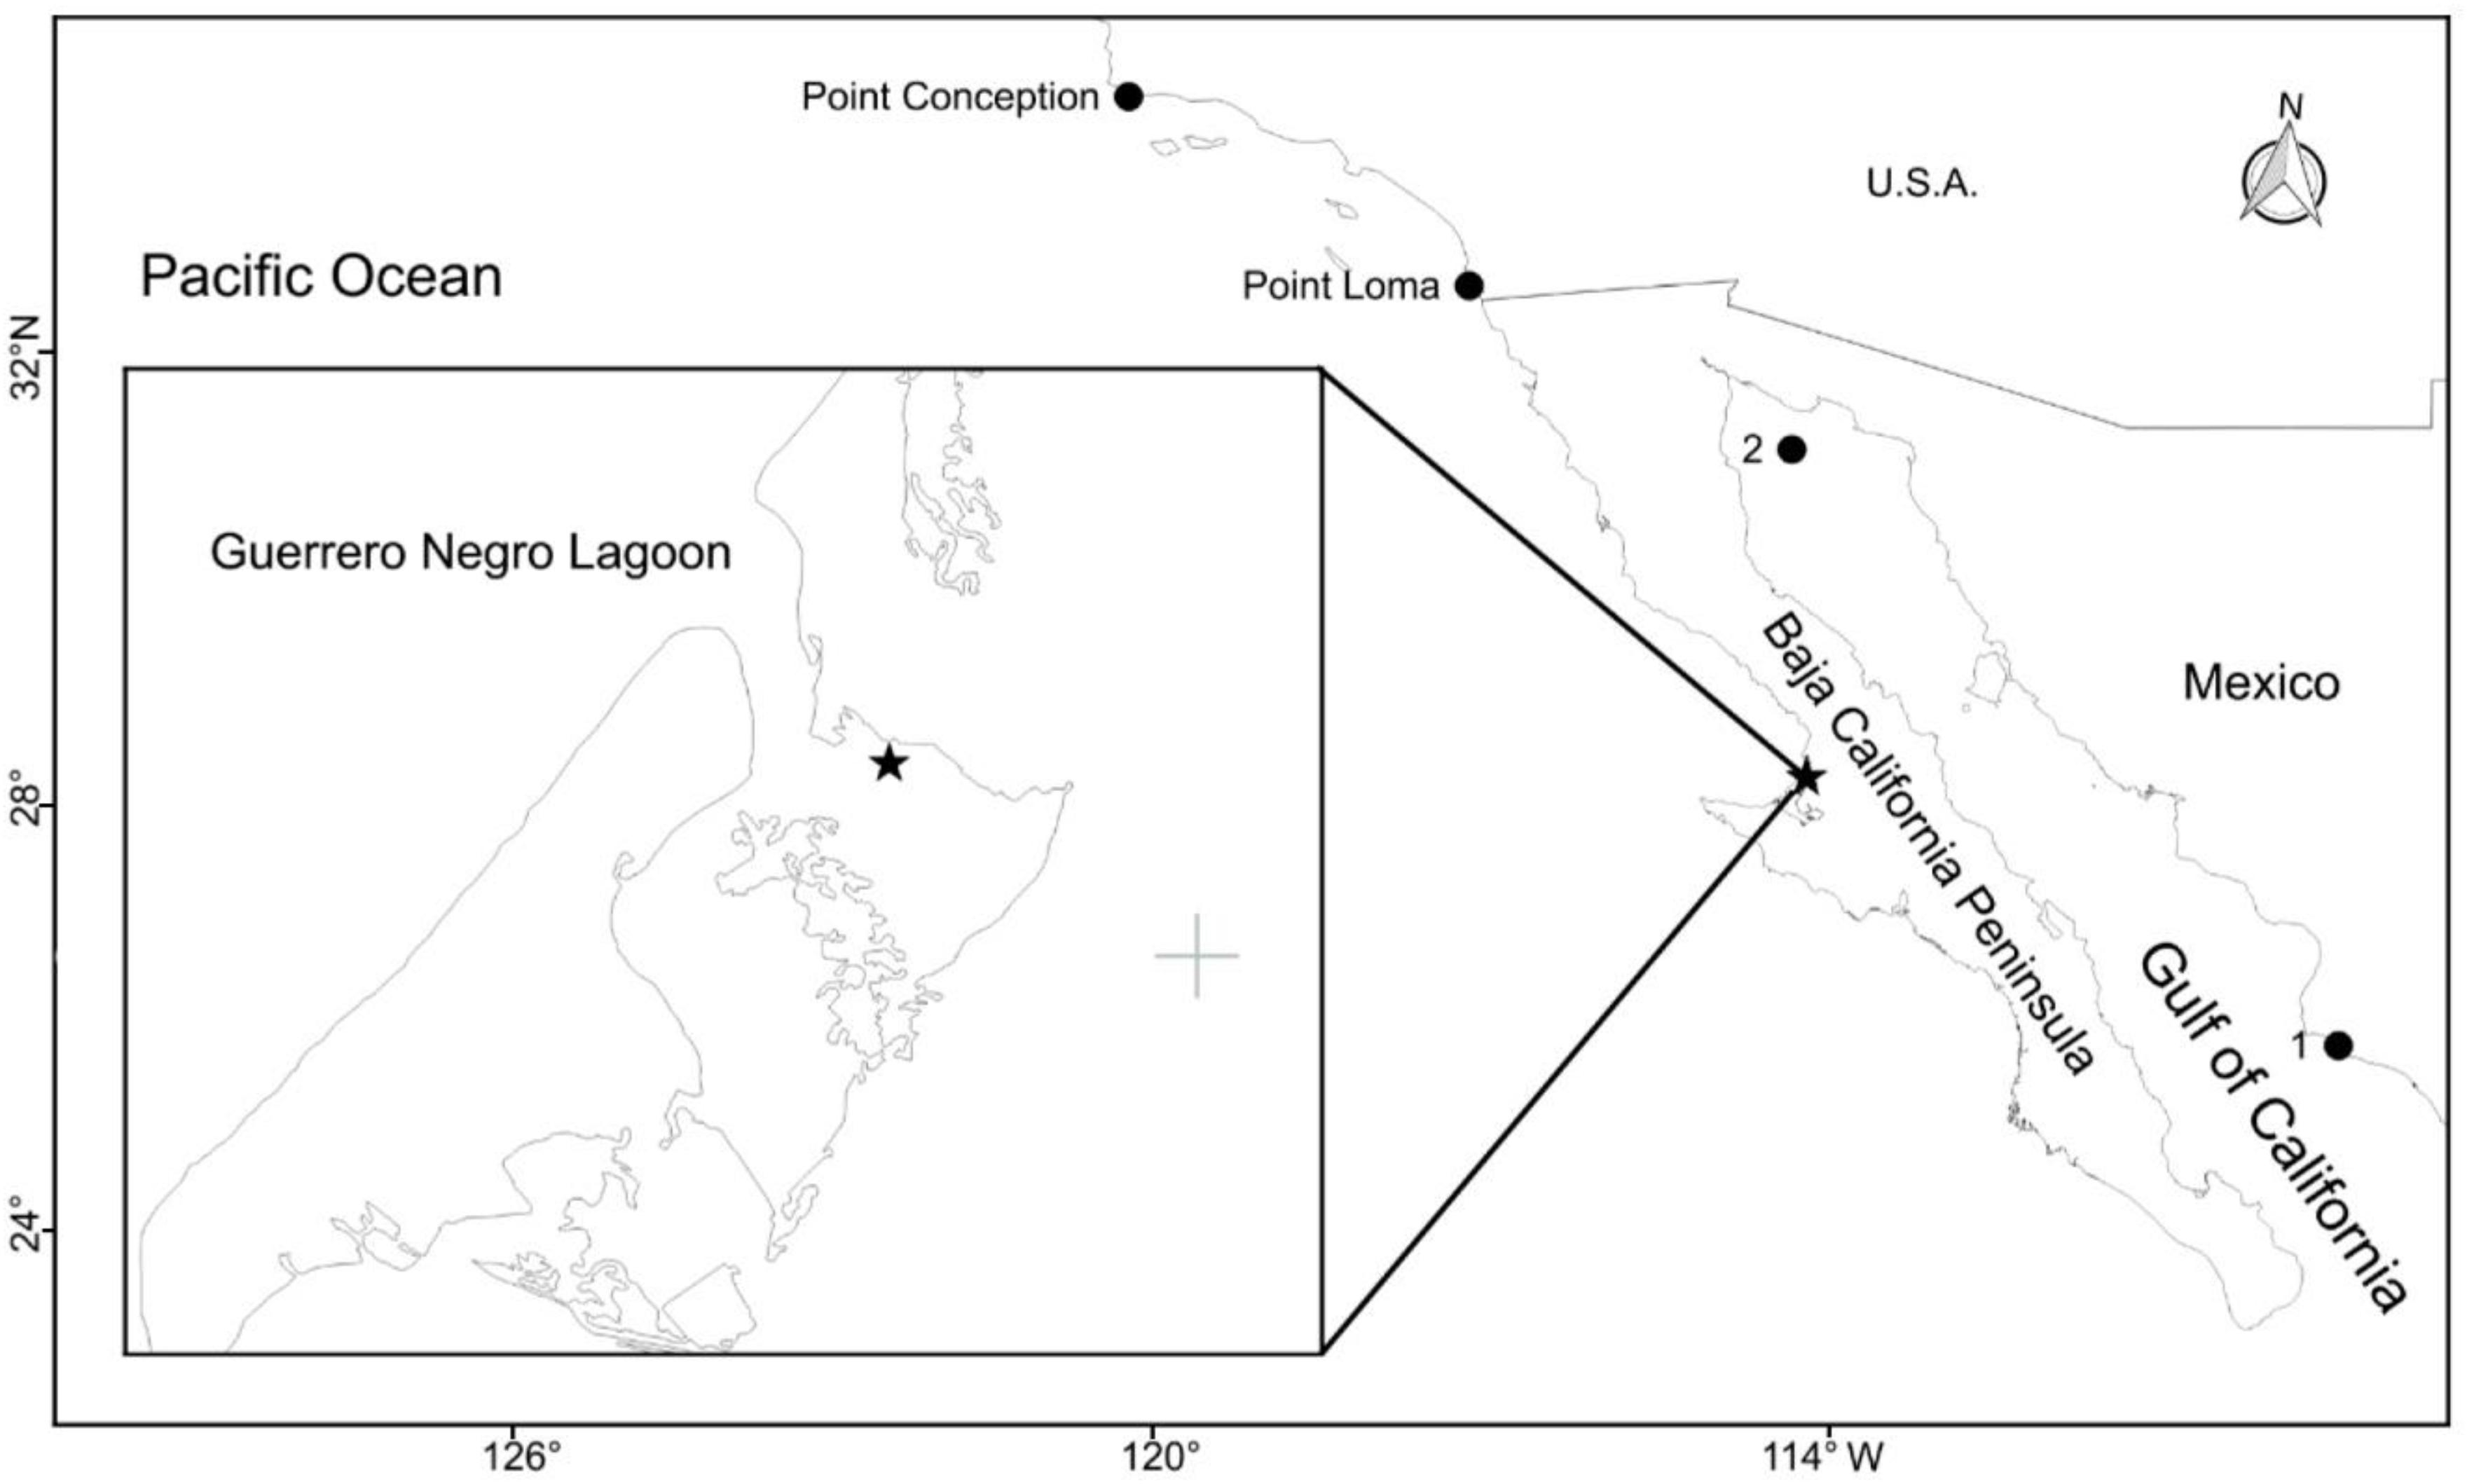 ... reported of Neastacilla californica () on the Pacific coast and in the  Gulf of California. 1 Topolobampo Bay, 2 Roca Consag. Black star shows the  ...